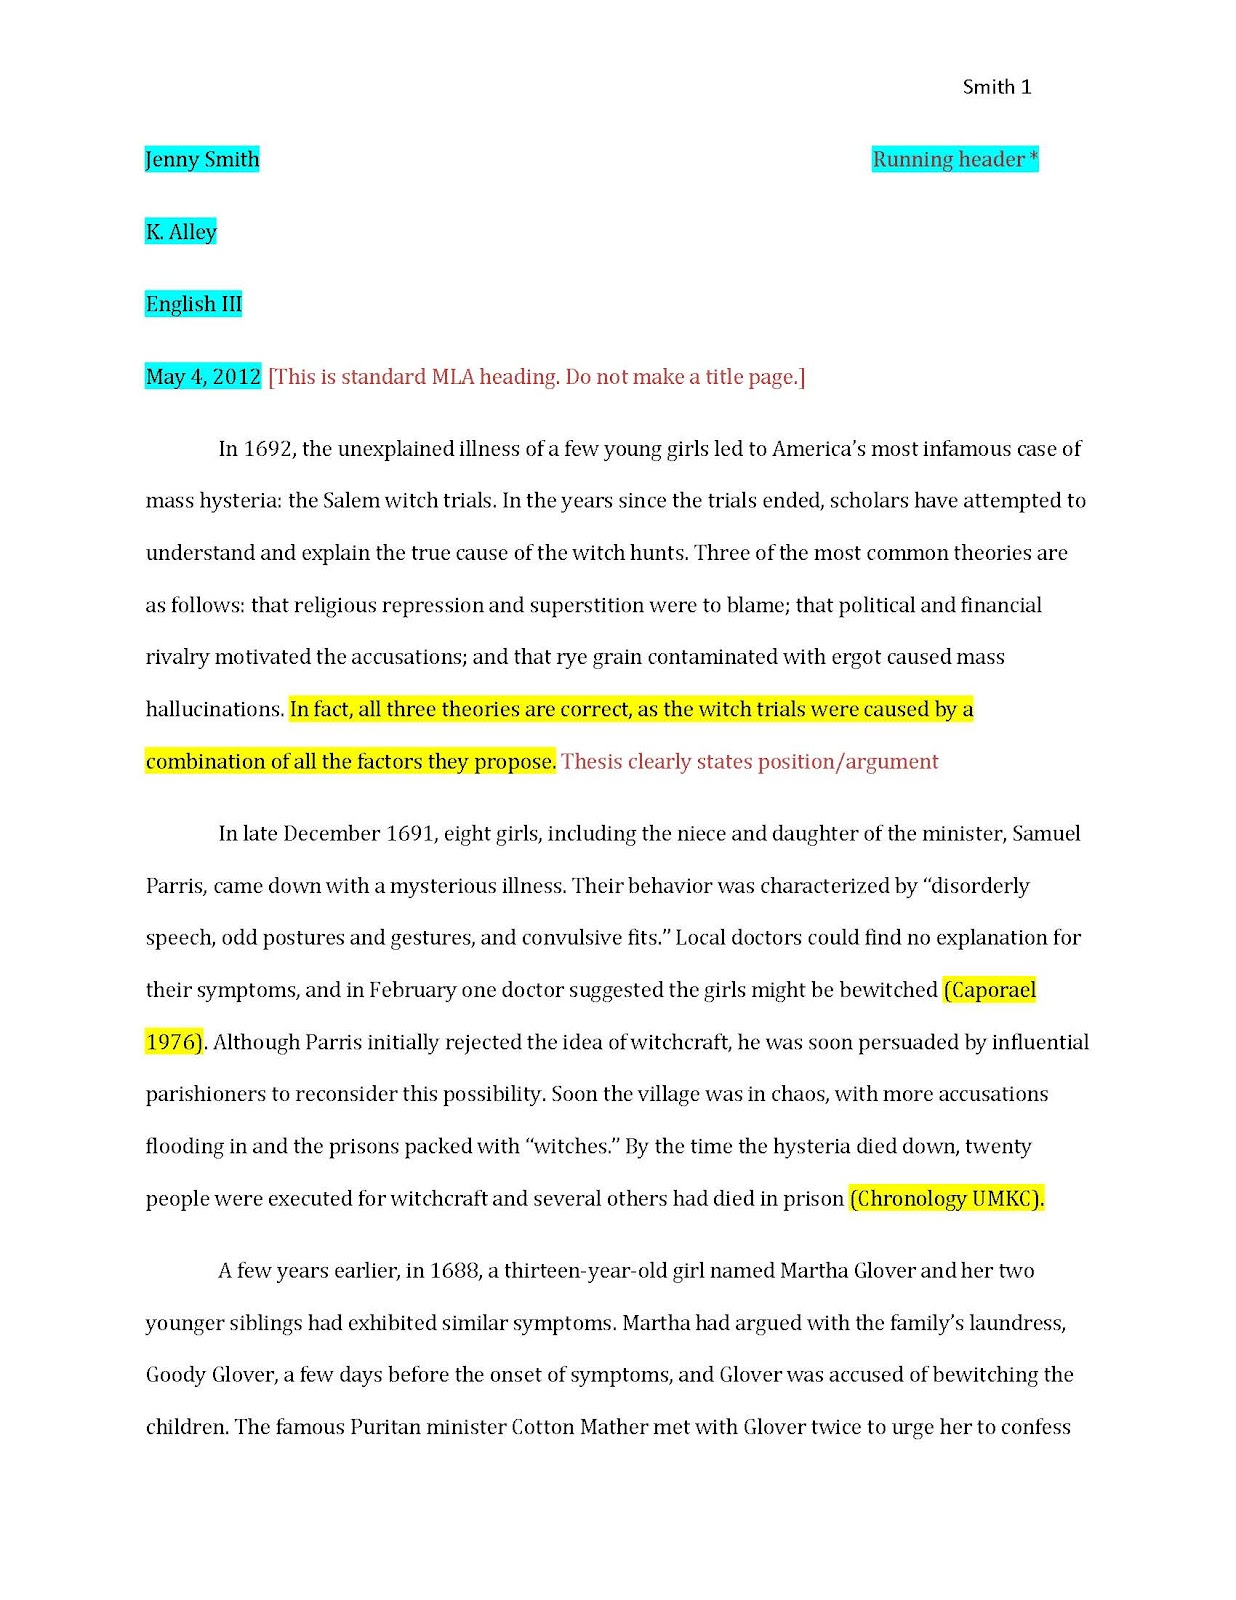 023 Chicago Style In Text Citation Sample Paper Examplepaper Page 1 Wondrous Full